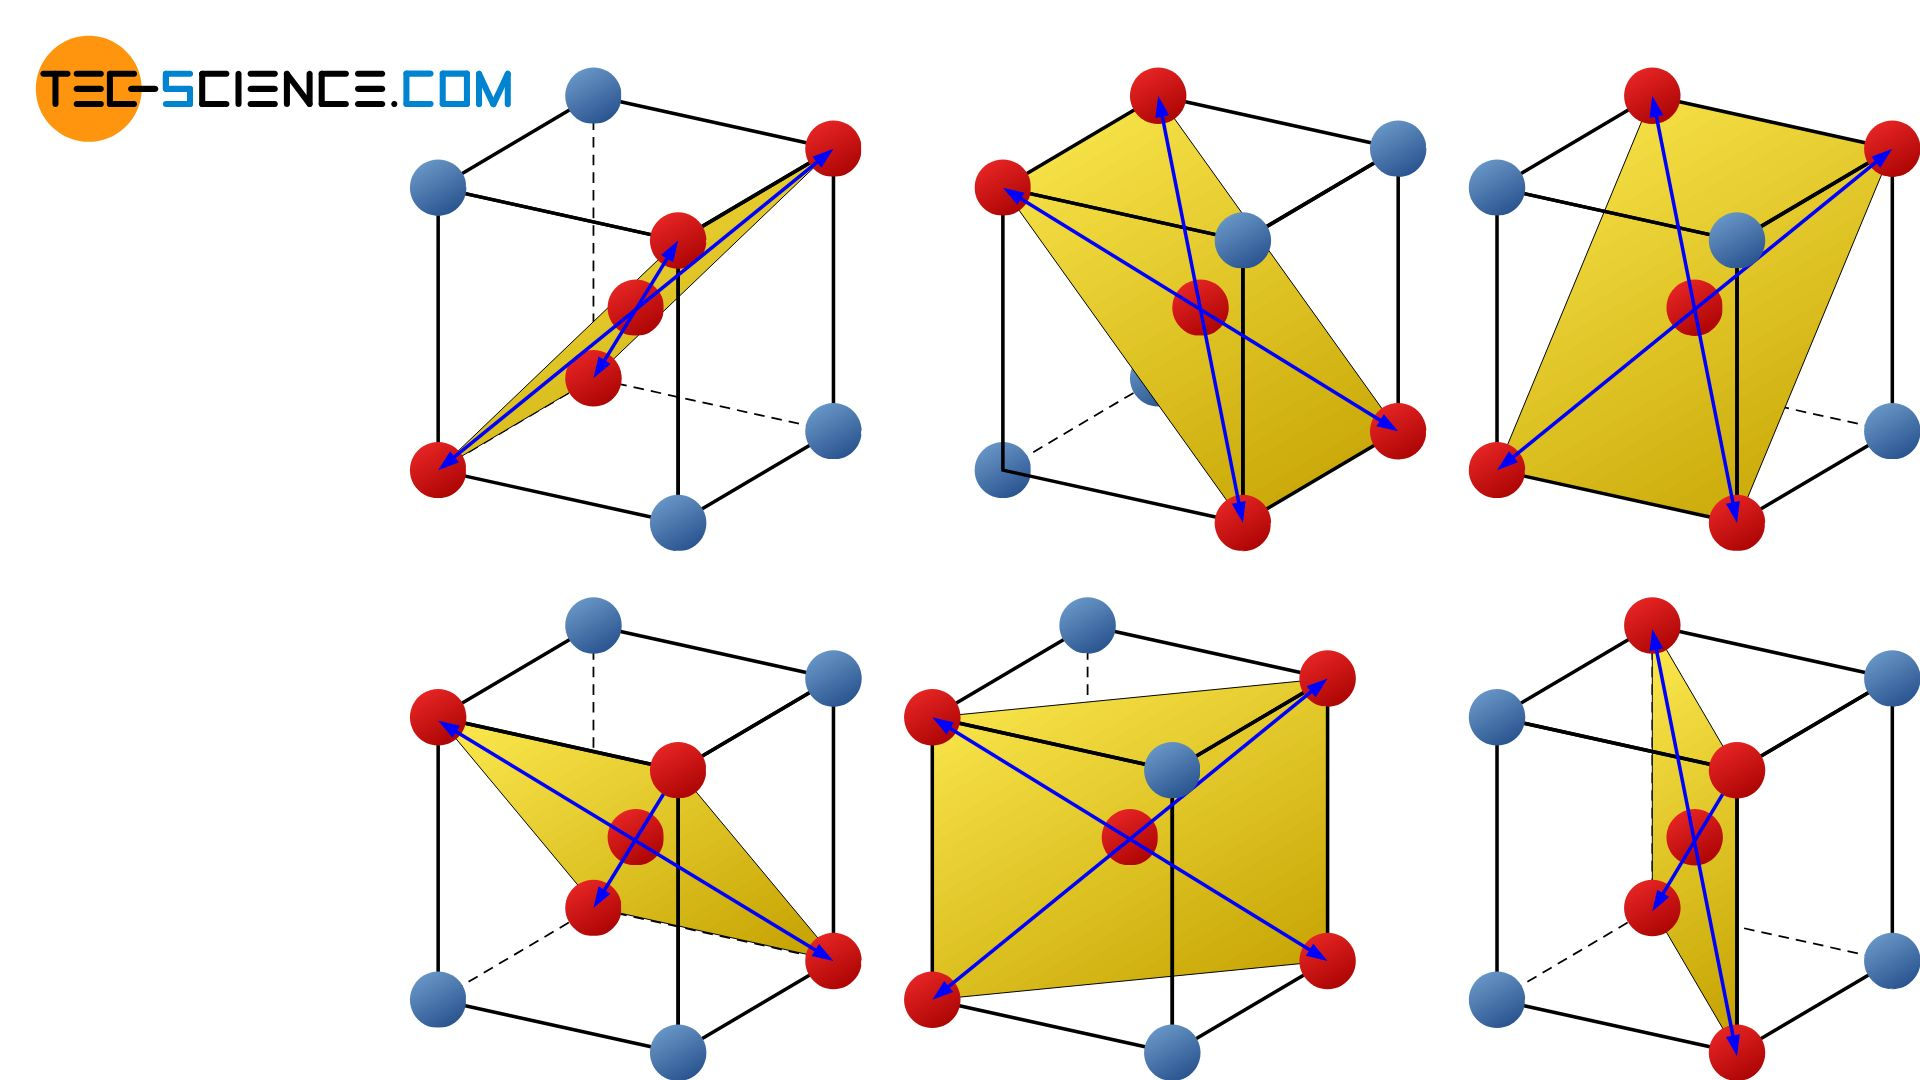 Slip planes in the body-centered cubic lattice structure